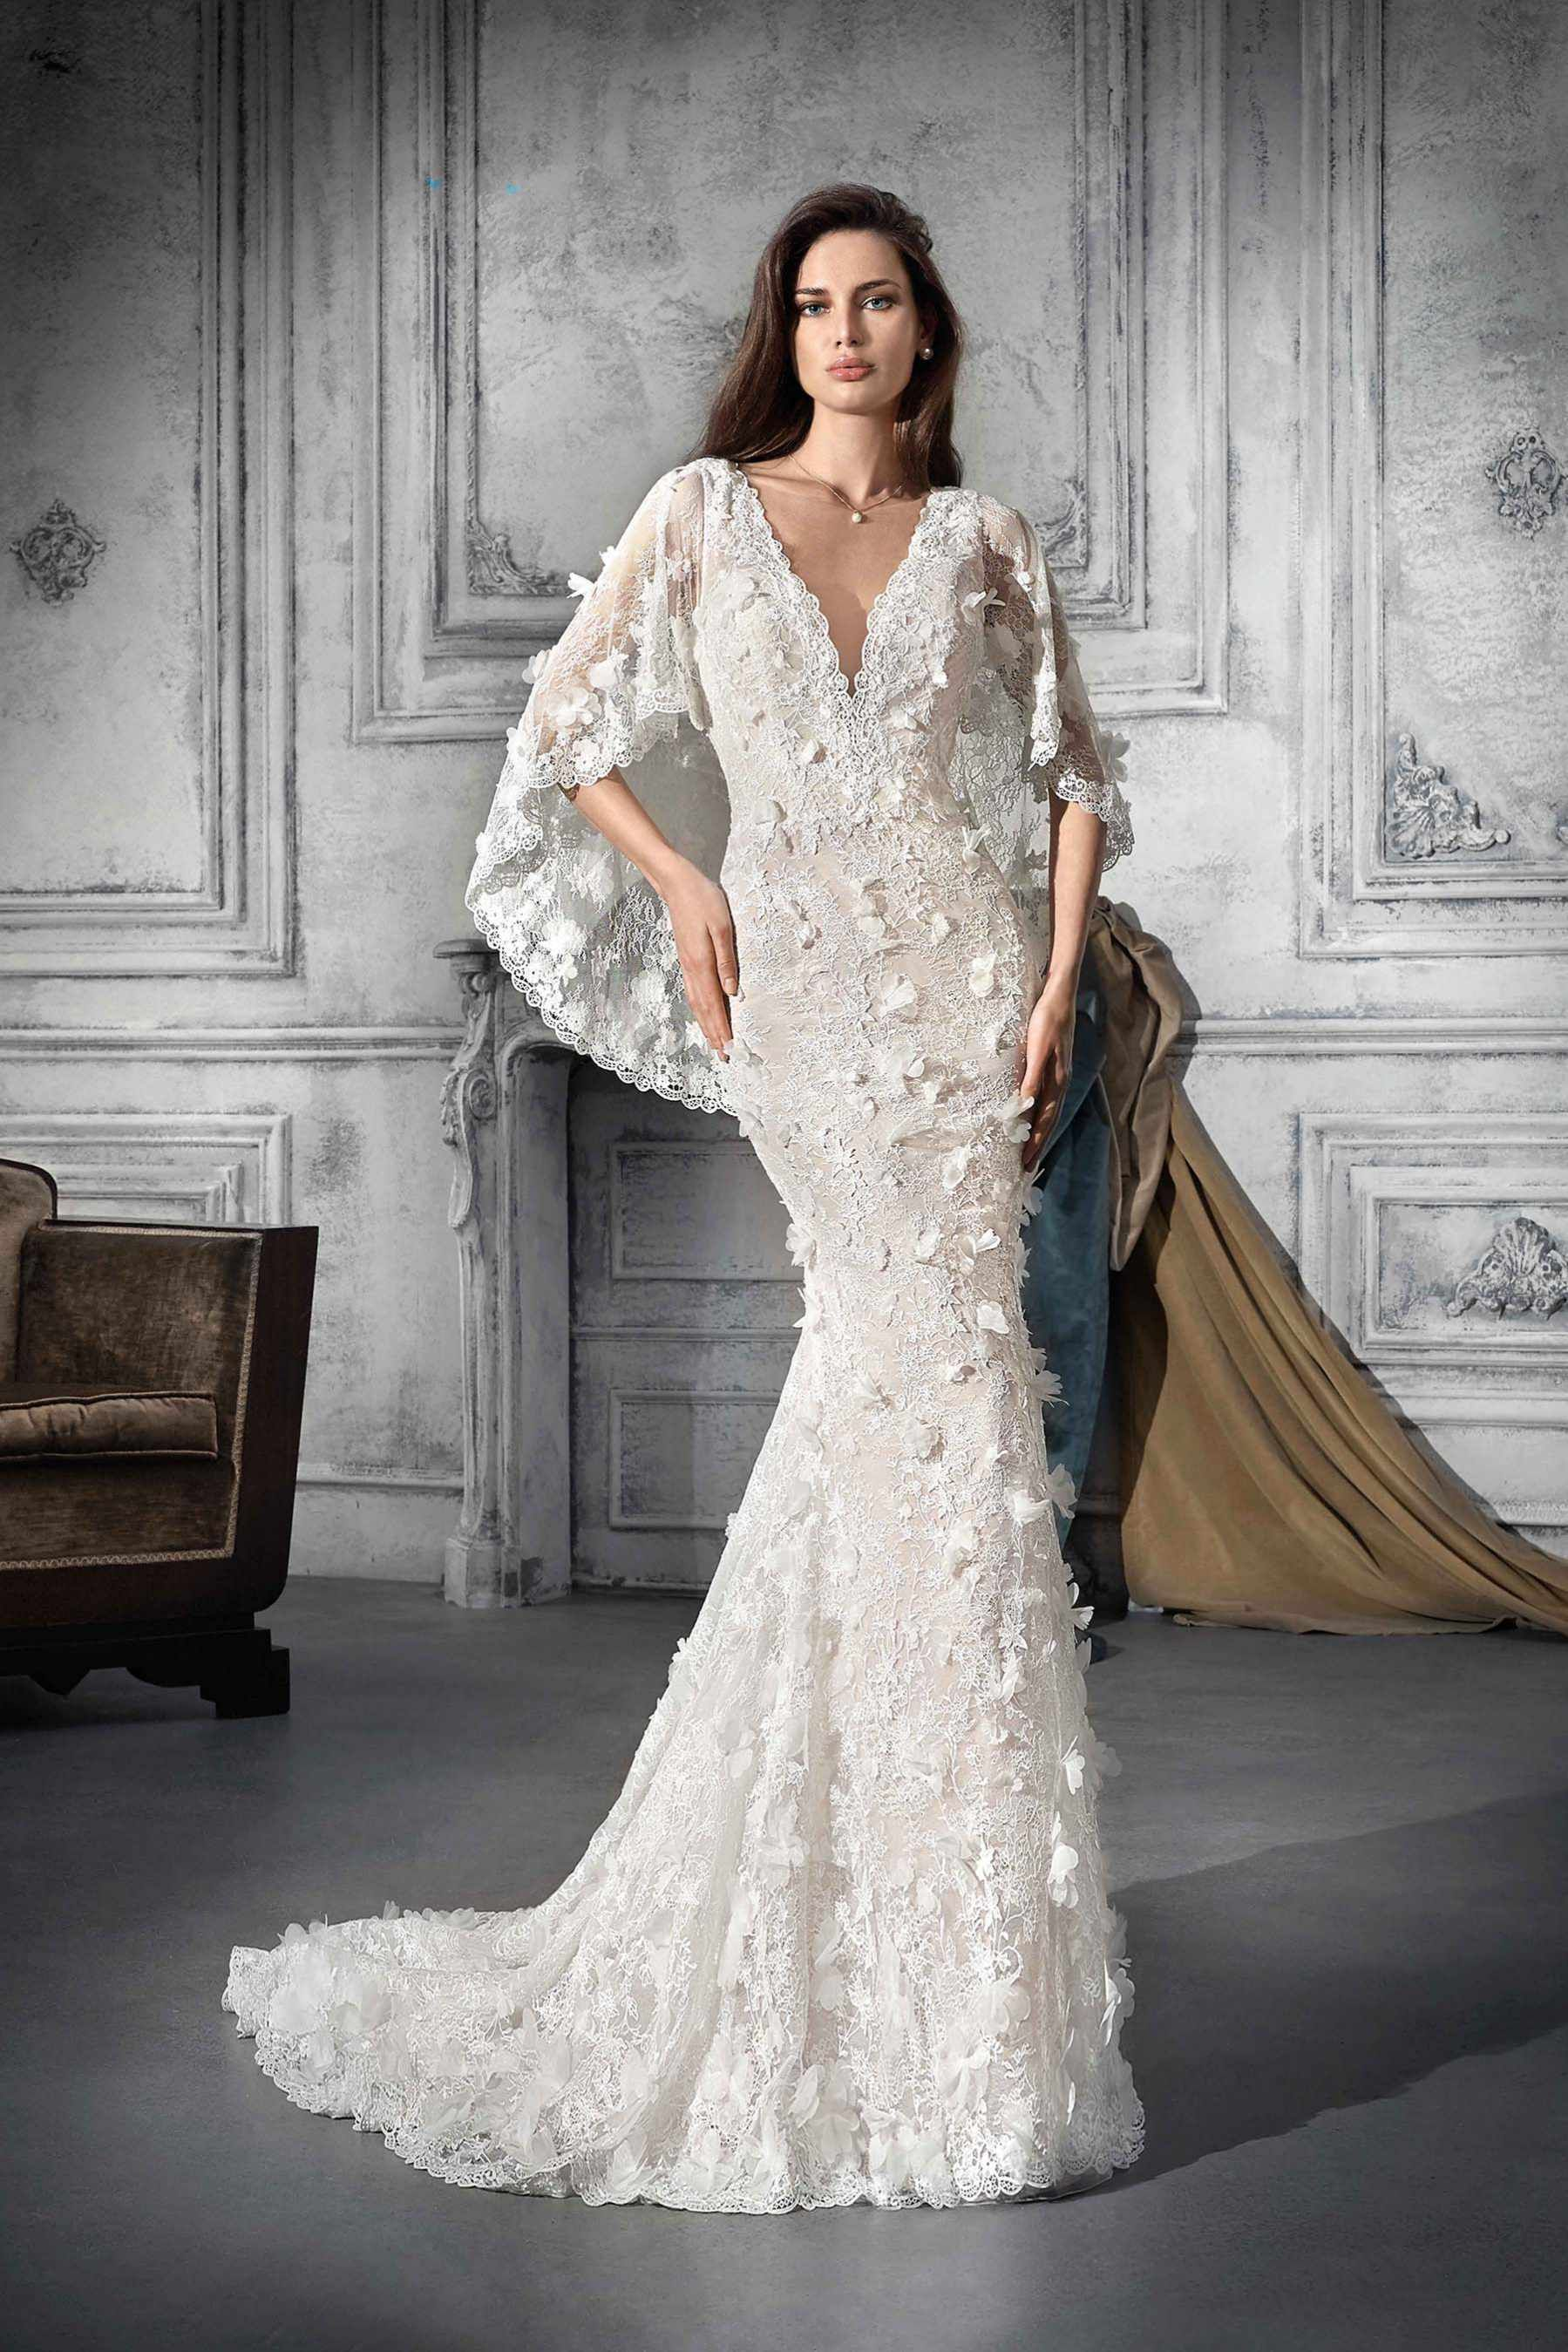 Demetrios wedding dress style find your happily ever after in